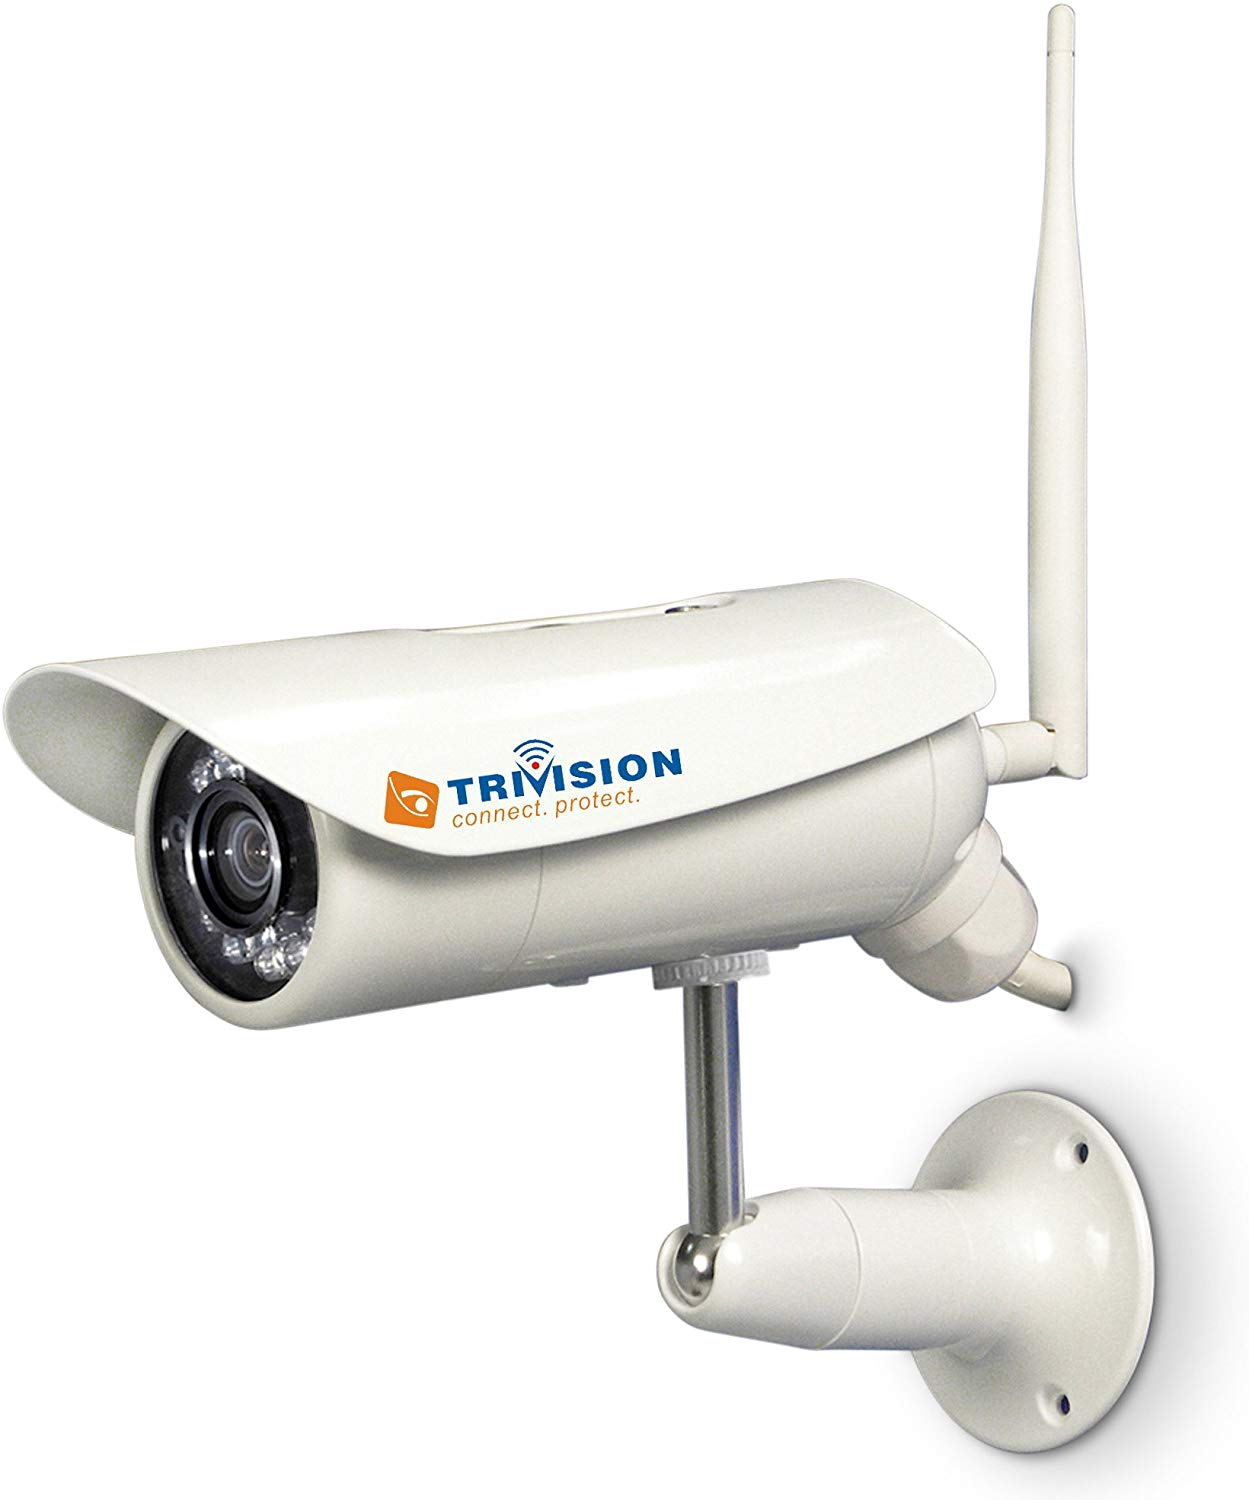 TriVision NC-336PW HD 1080P Bullet Waterproof Wireless Outdoor Home Security Camera System Wireless Wifi